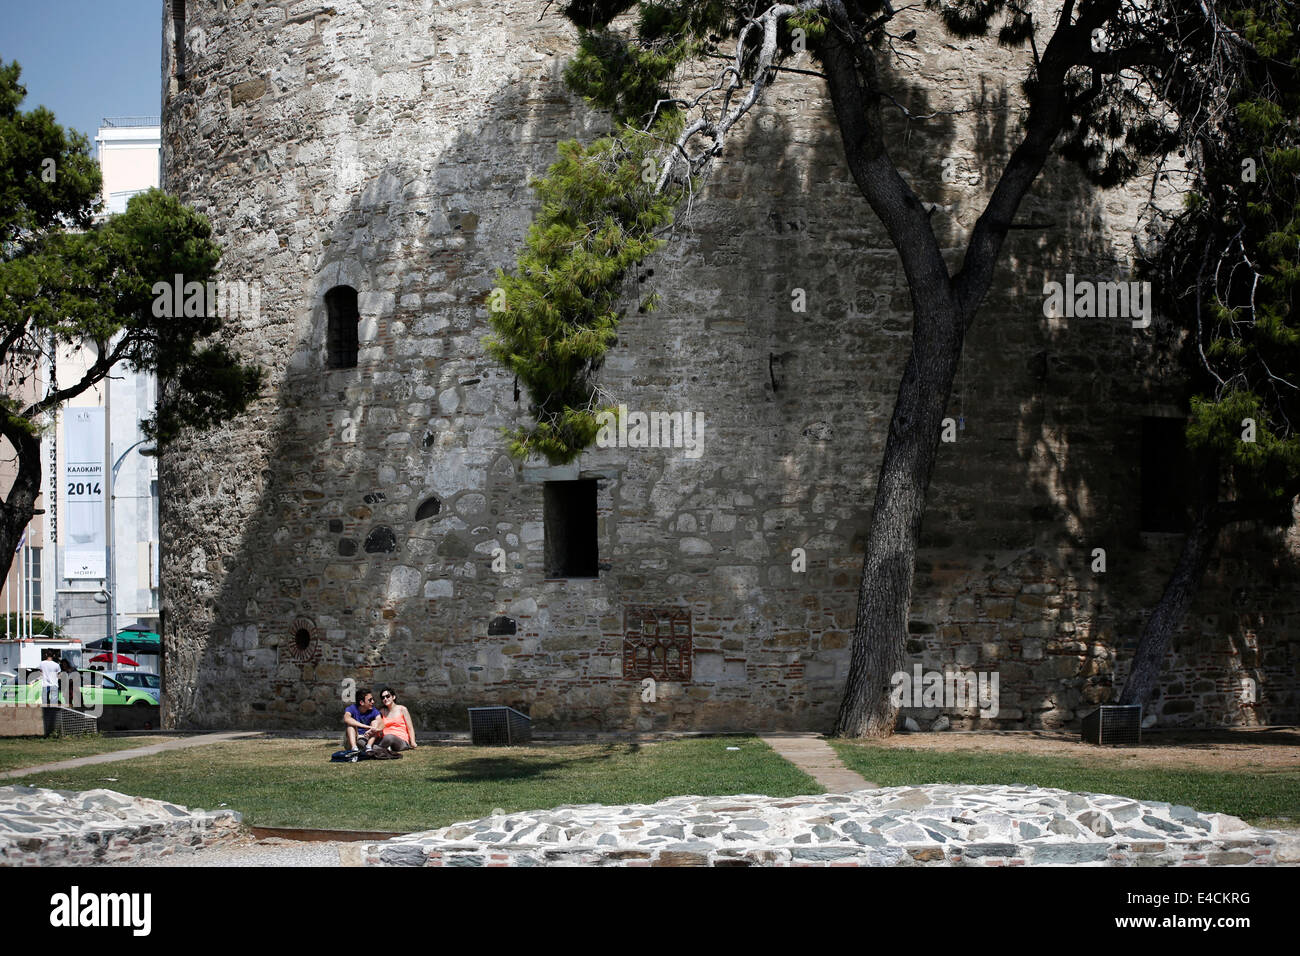 A couple relax under the landmark of Thessaloniki, the White Tower. Northern Greece - Stock Image